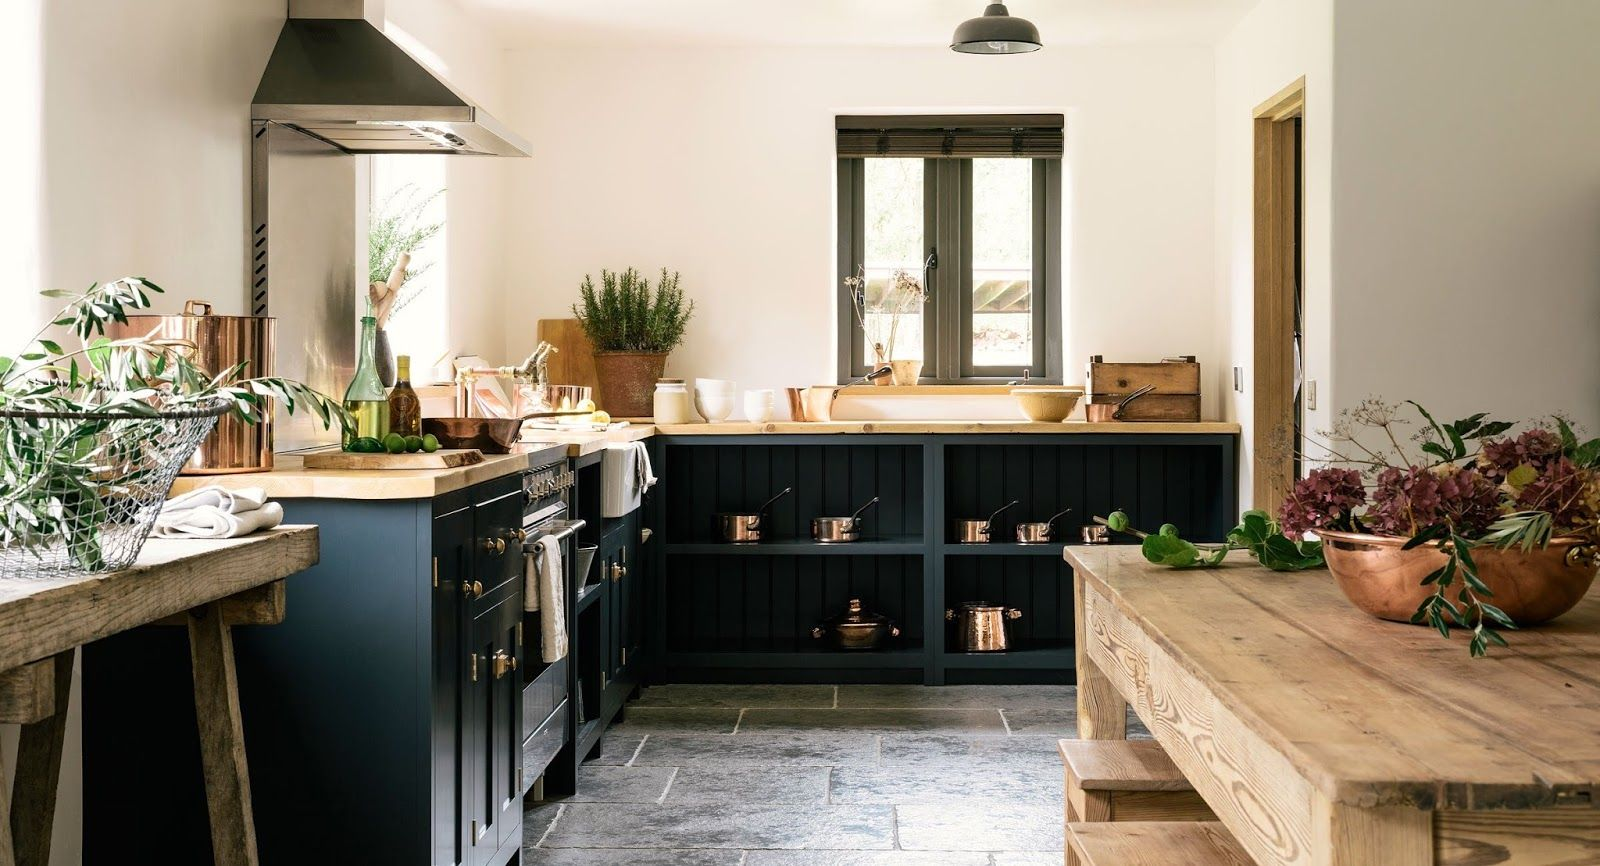 Handsome Custom Country Kitchen On A Budget!